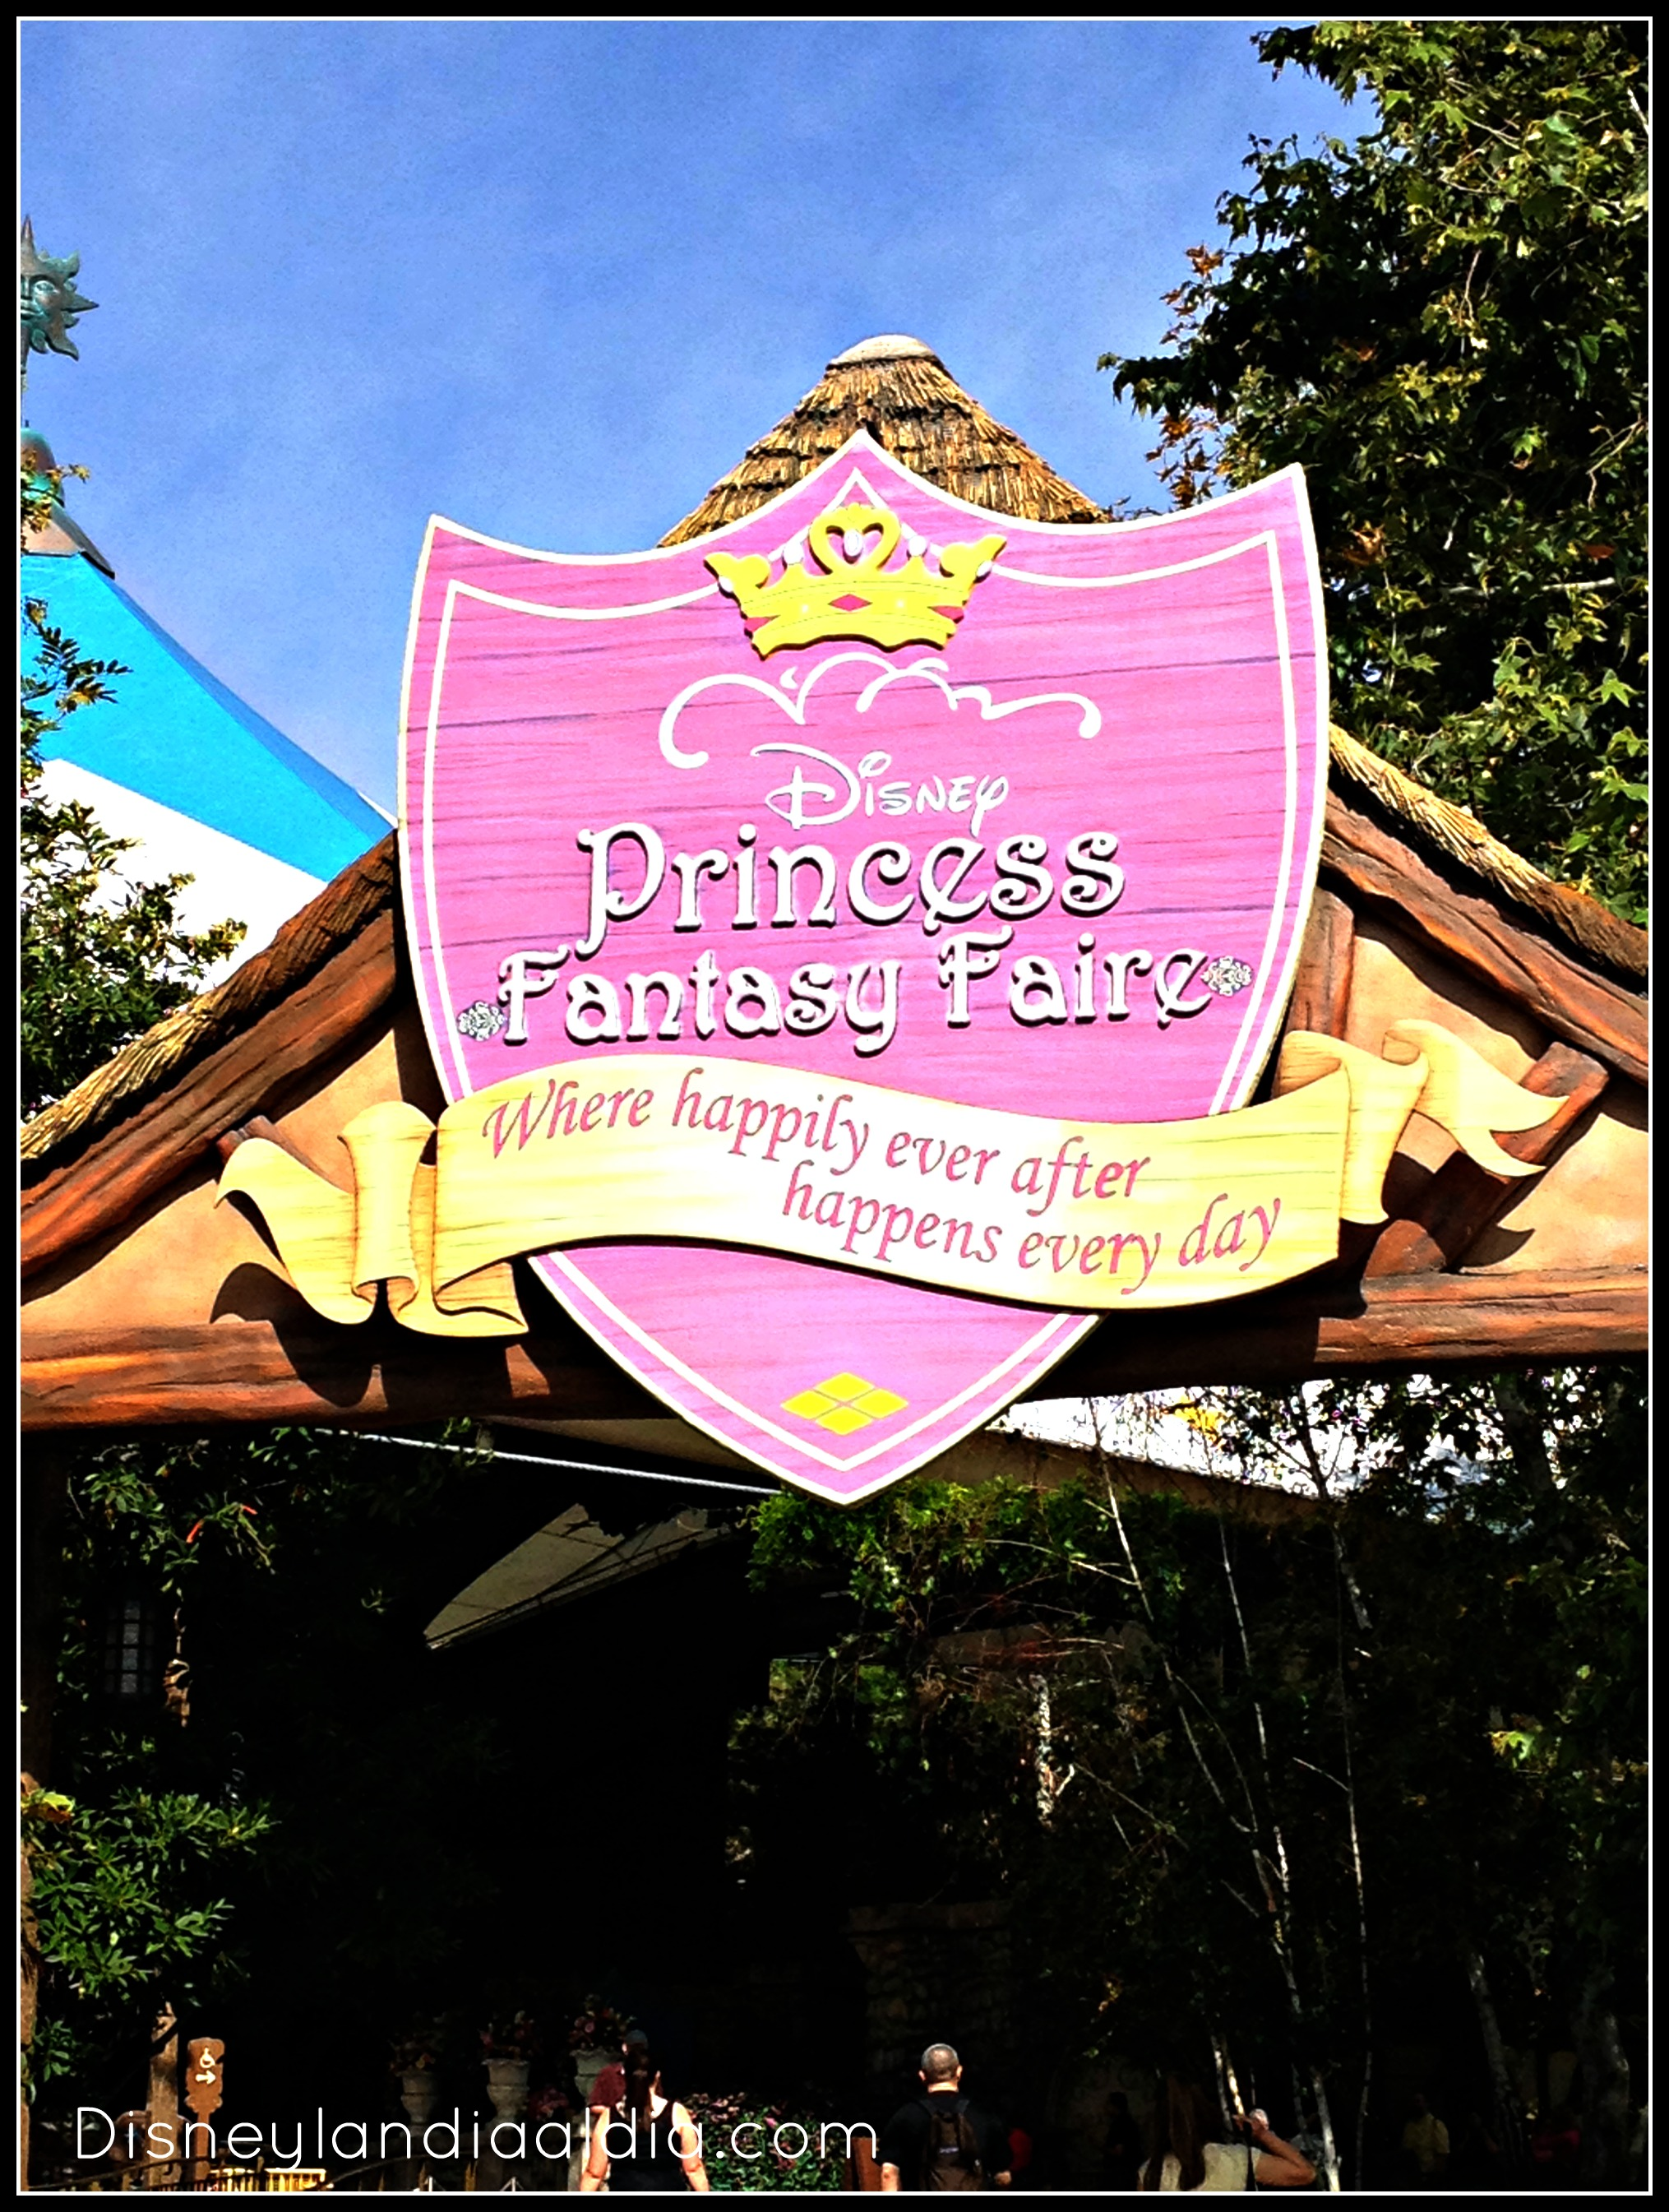 disney-princess-fantasy-faire-en-disneylandia